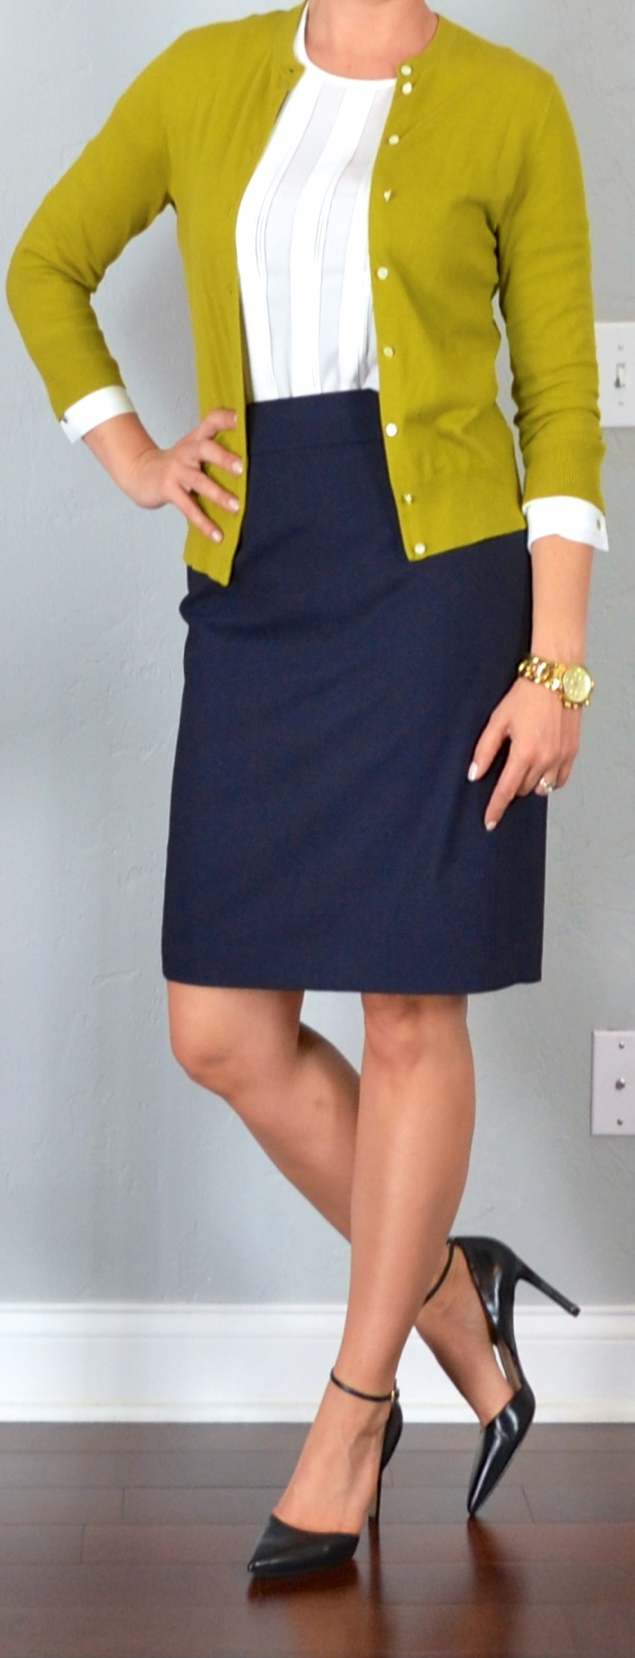 Outfit post white blouse mustard/green cardigan navy pencil skirt black pointed toe heels